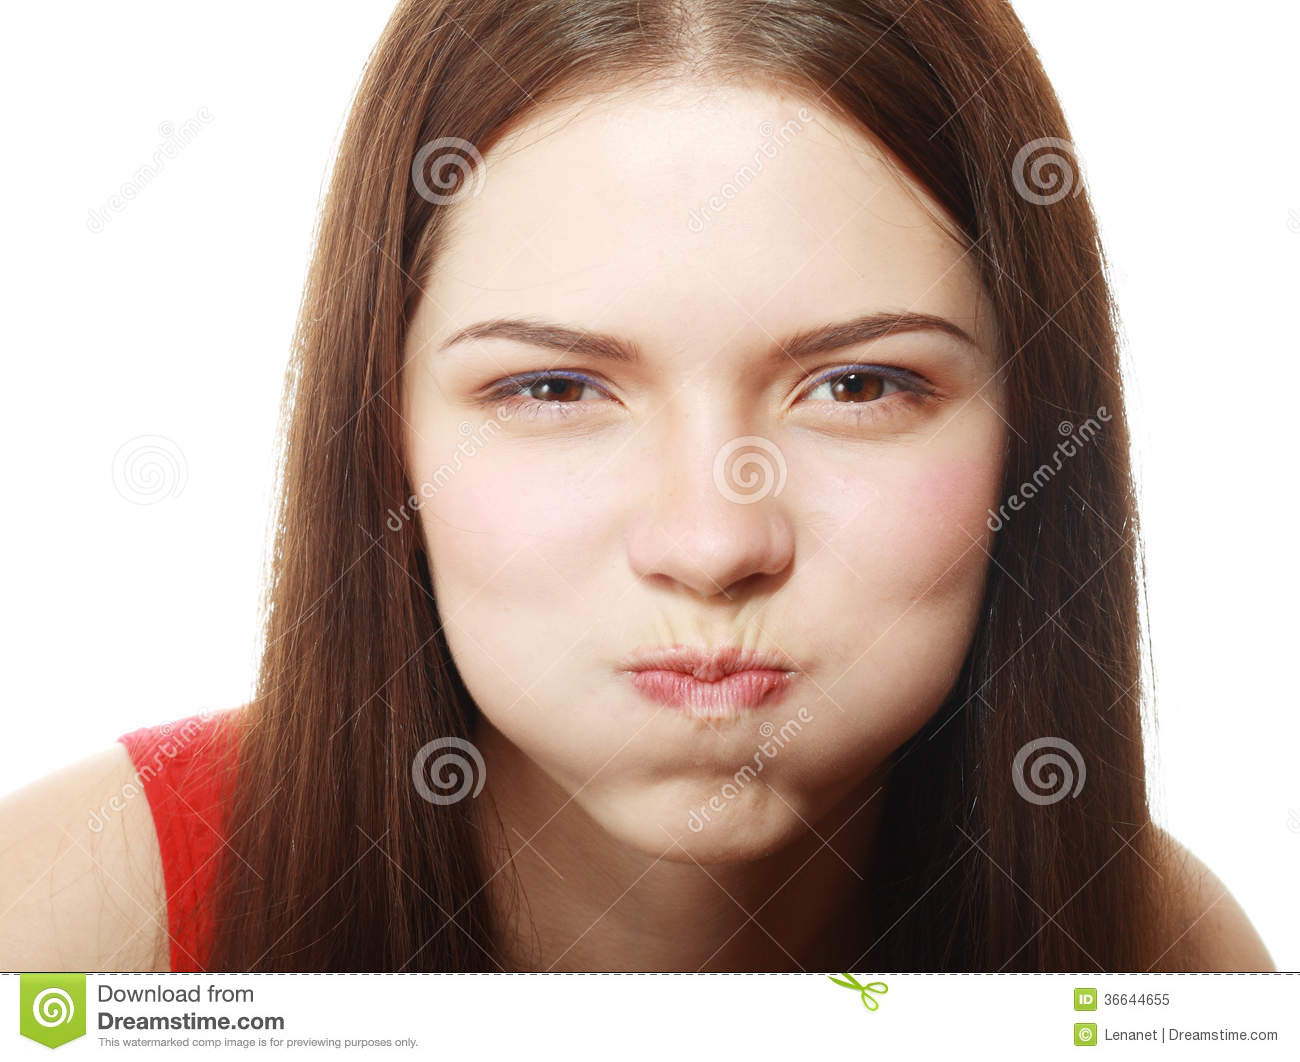 Puffed Cheeks Stock Photos, Royalty-Free Images & Vectors ...